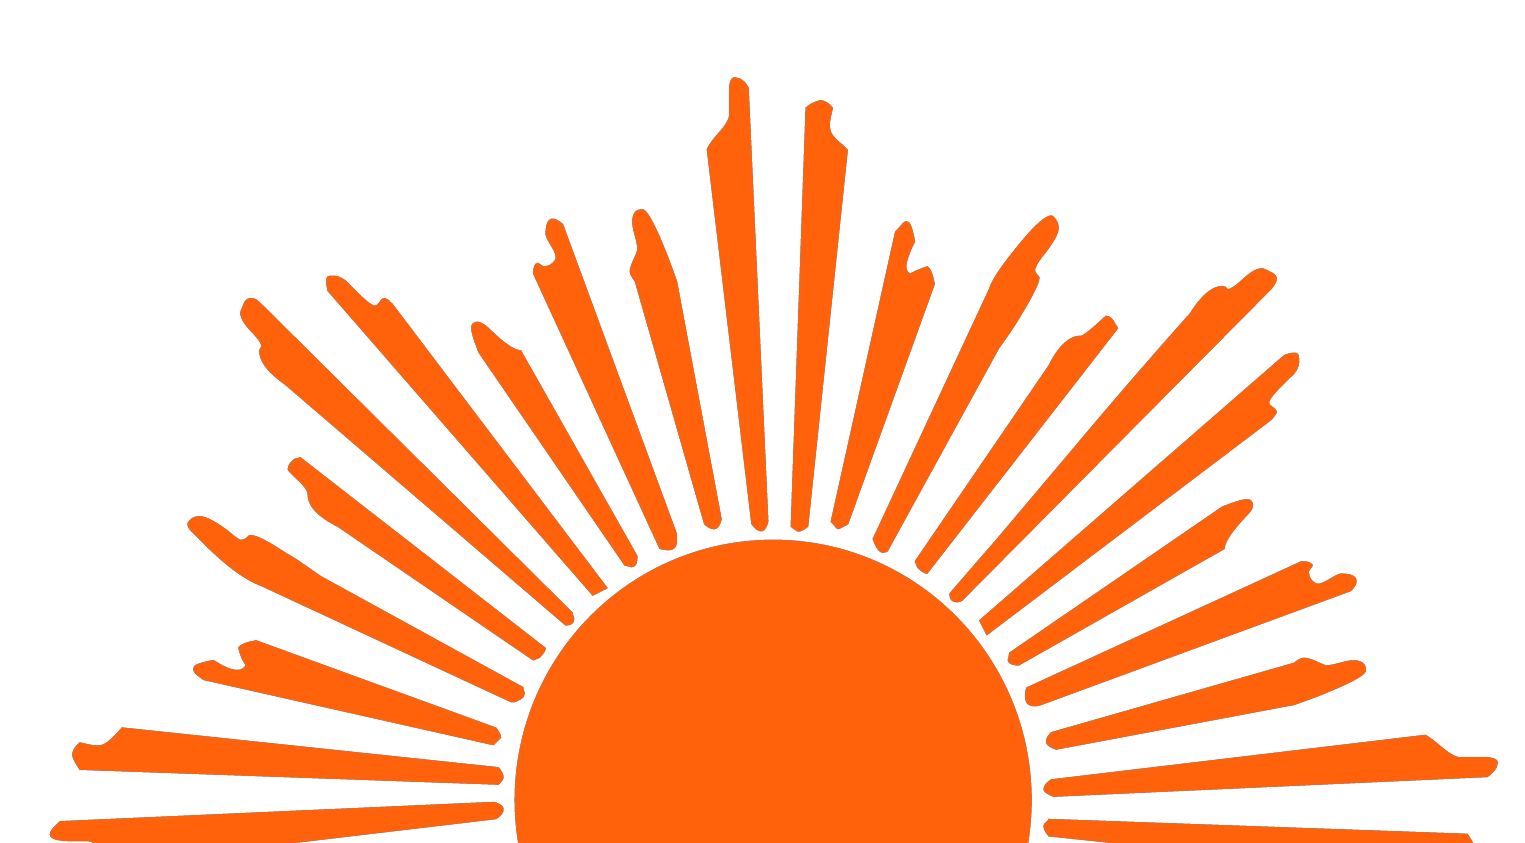 1525x843 Half Sun With Rays Png Transparent Half Sun With Rays.png Images